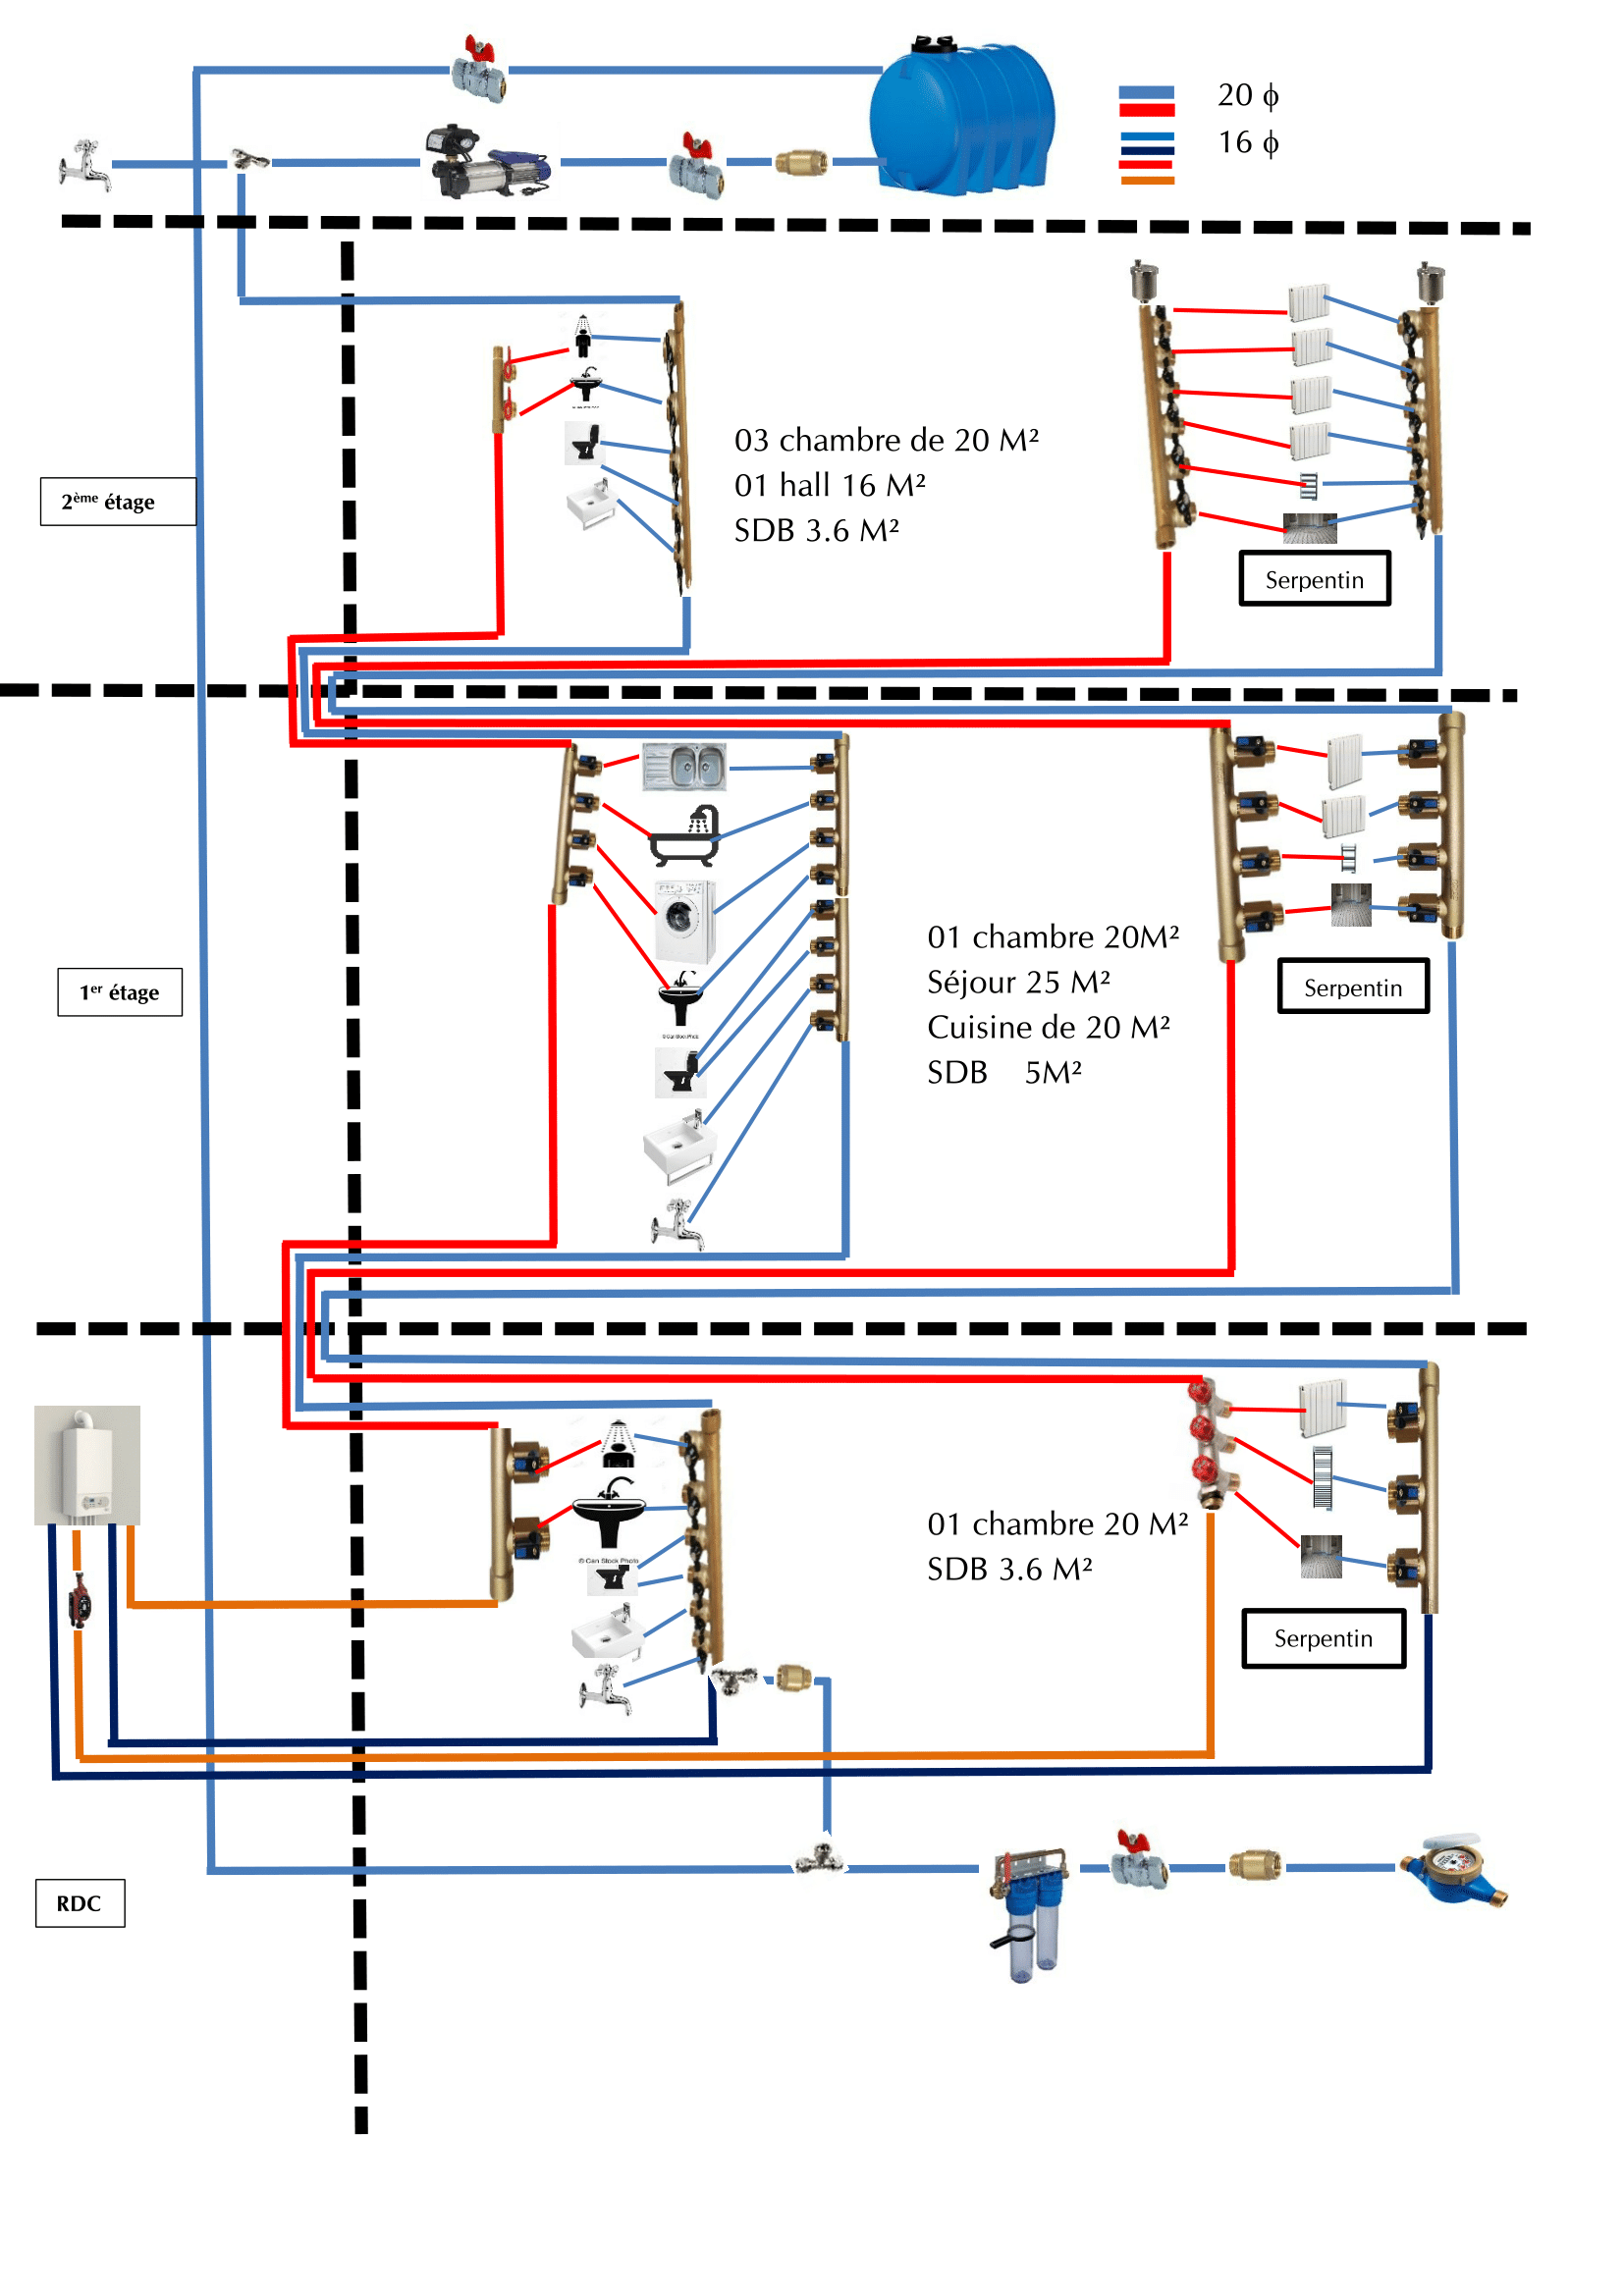 PLAN PLOMBERIE-1.png, 376.21 kb, 1654 x 2339